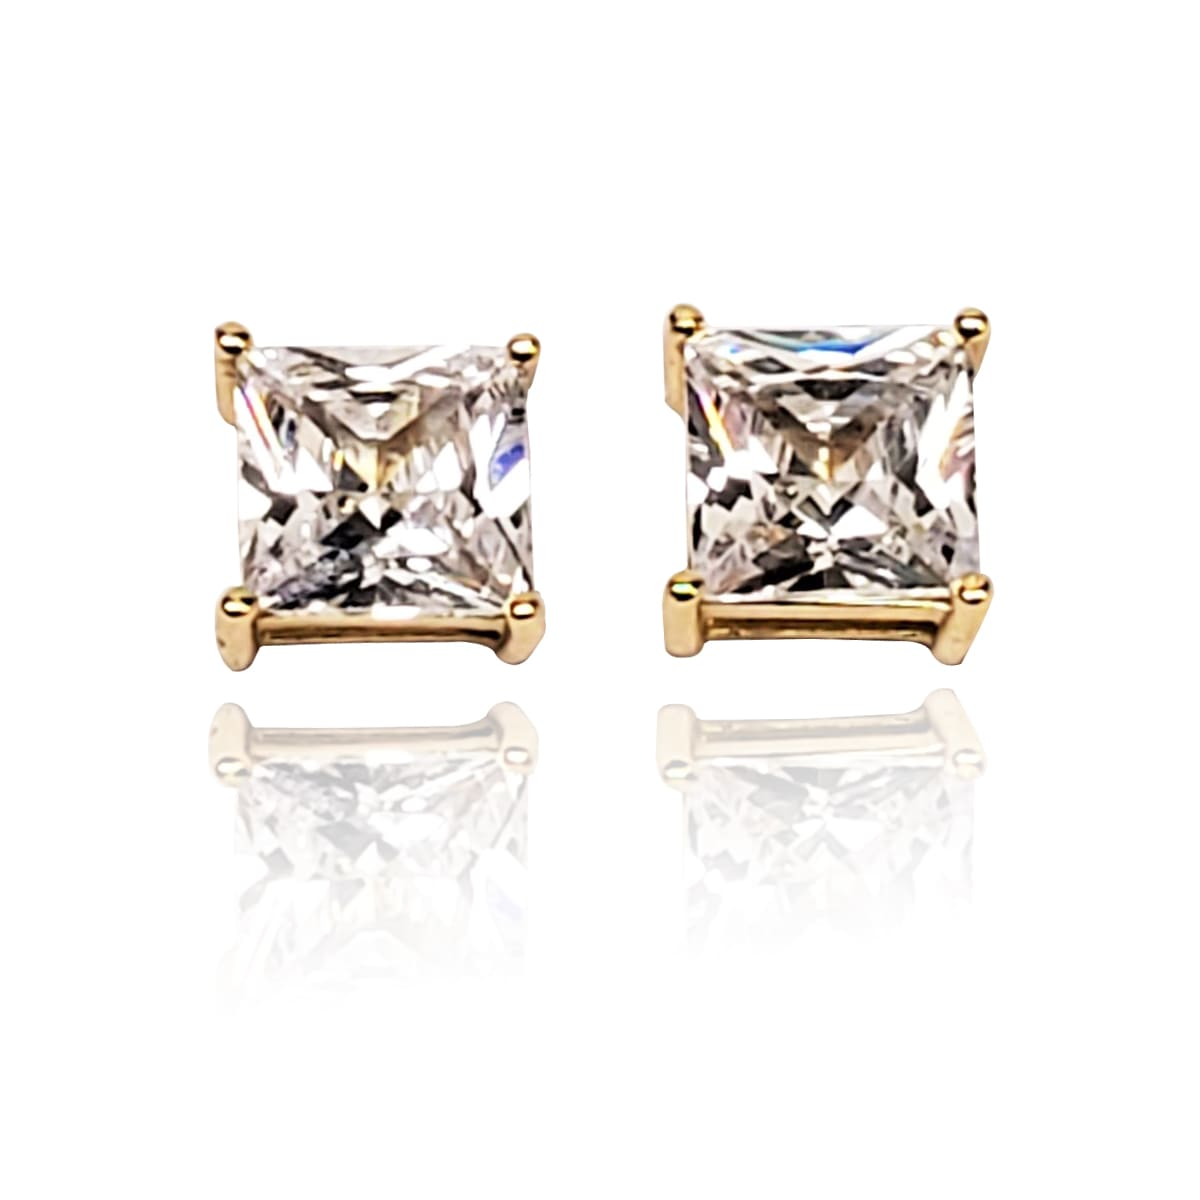 .925 Sterling Silver AAA Grade CZ Square Stud Earrings - Gold and Silver